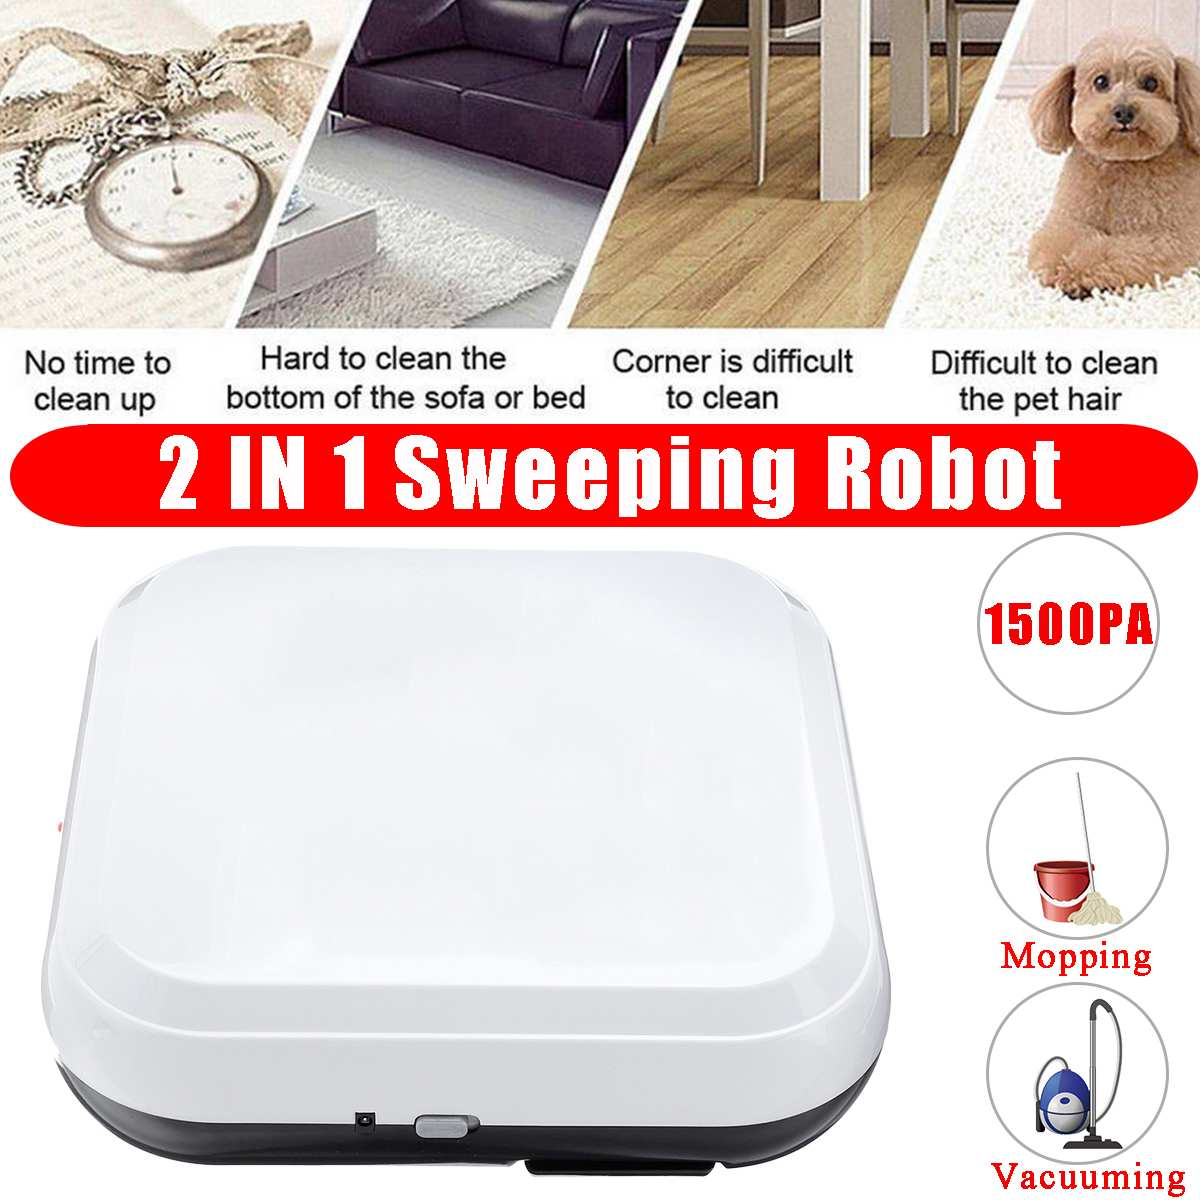 2 in1 Automatic Sweeping Robot Household Cleaning Machine Vacuum Cleaner Charging Automatic Steering USB Charger Remove Dust Box2 in1 Automatic Sweeping Robot Household Cleaning Machine Vacuum Cleaner Charging Automatic Steering USB Charger Remove Dust Box